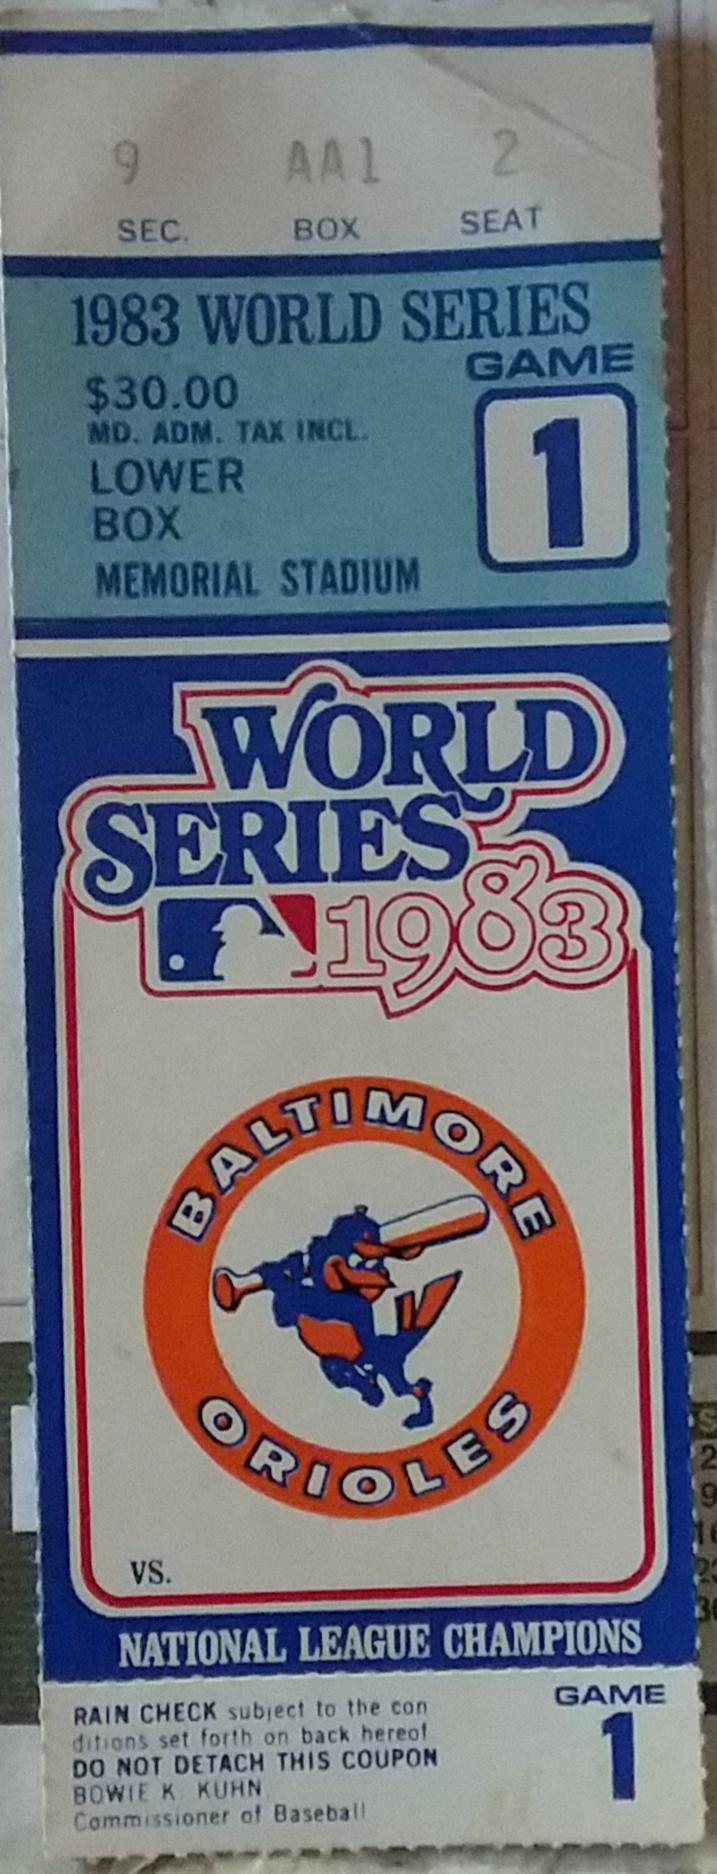 1983 World Series Game 1 ticket